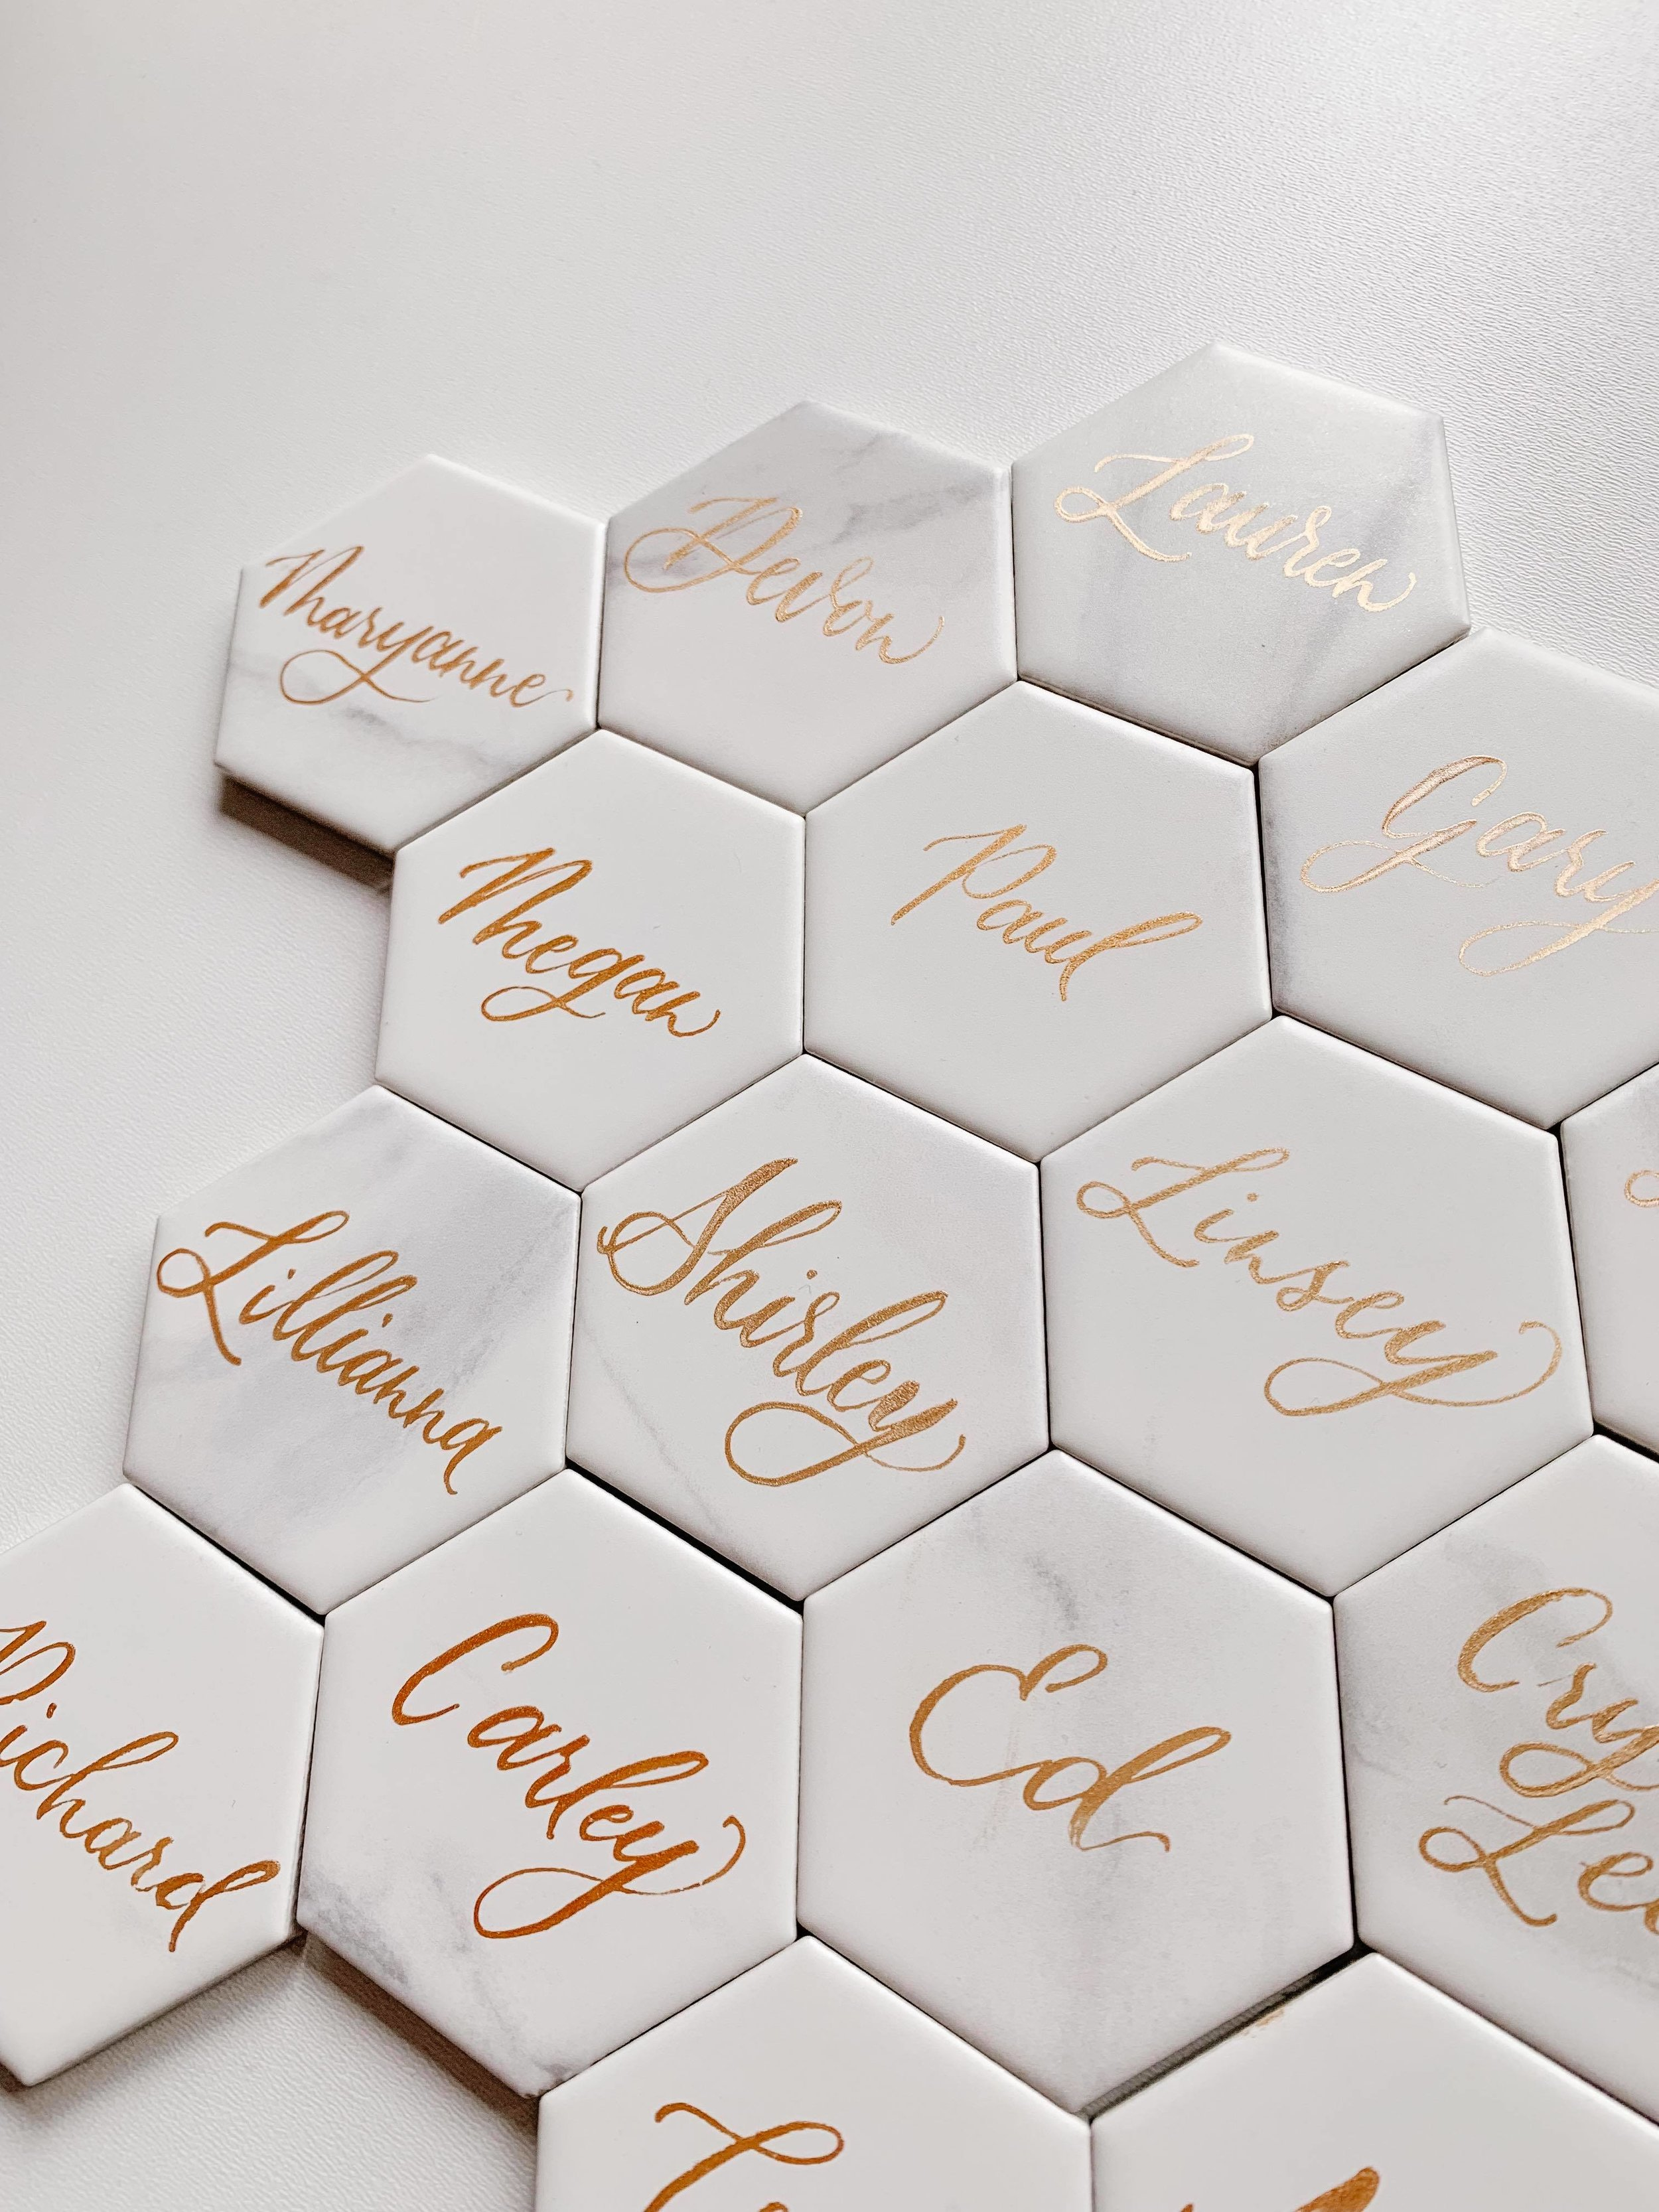 place-cards-tiles-gold-marble-Tayne-and-ashley.jpg